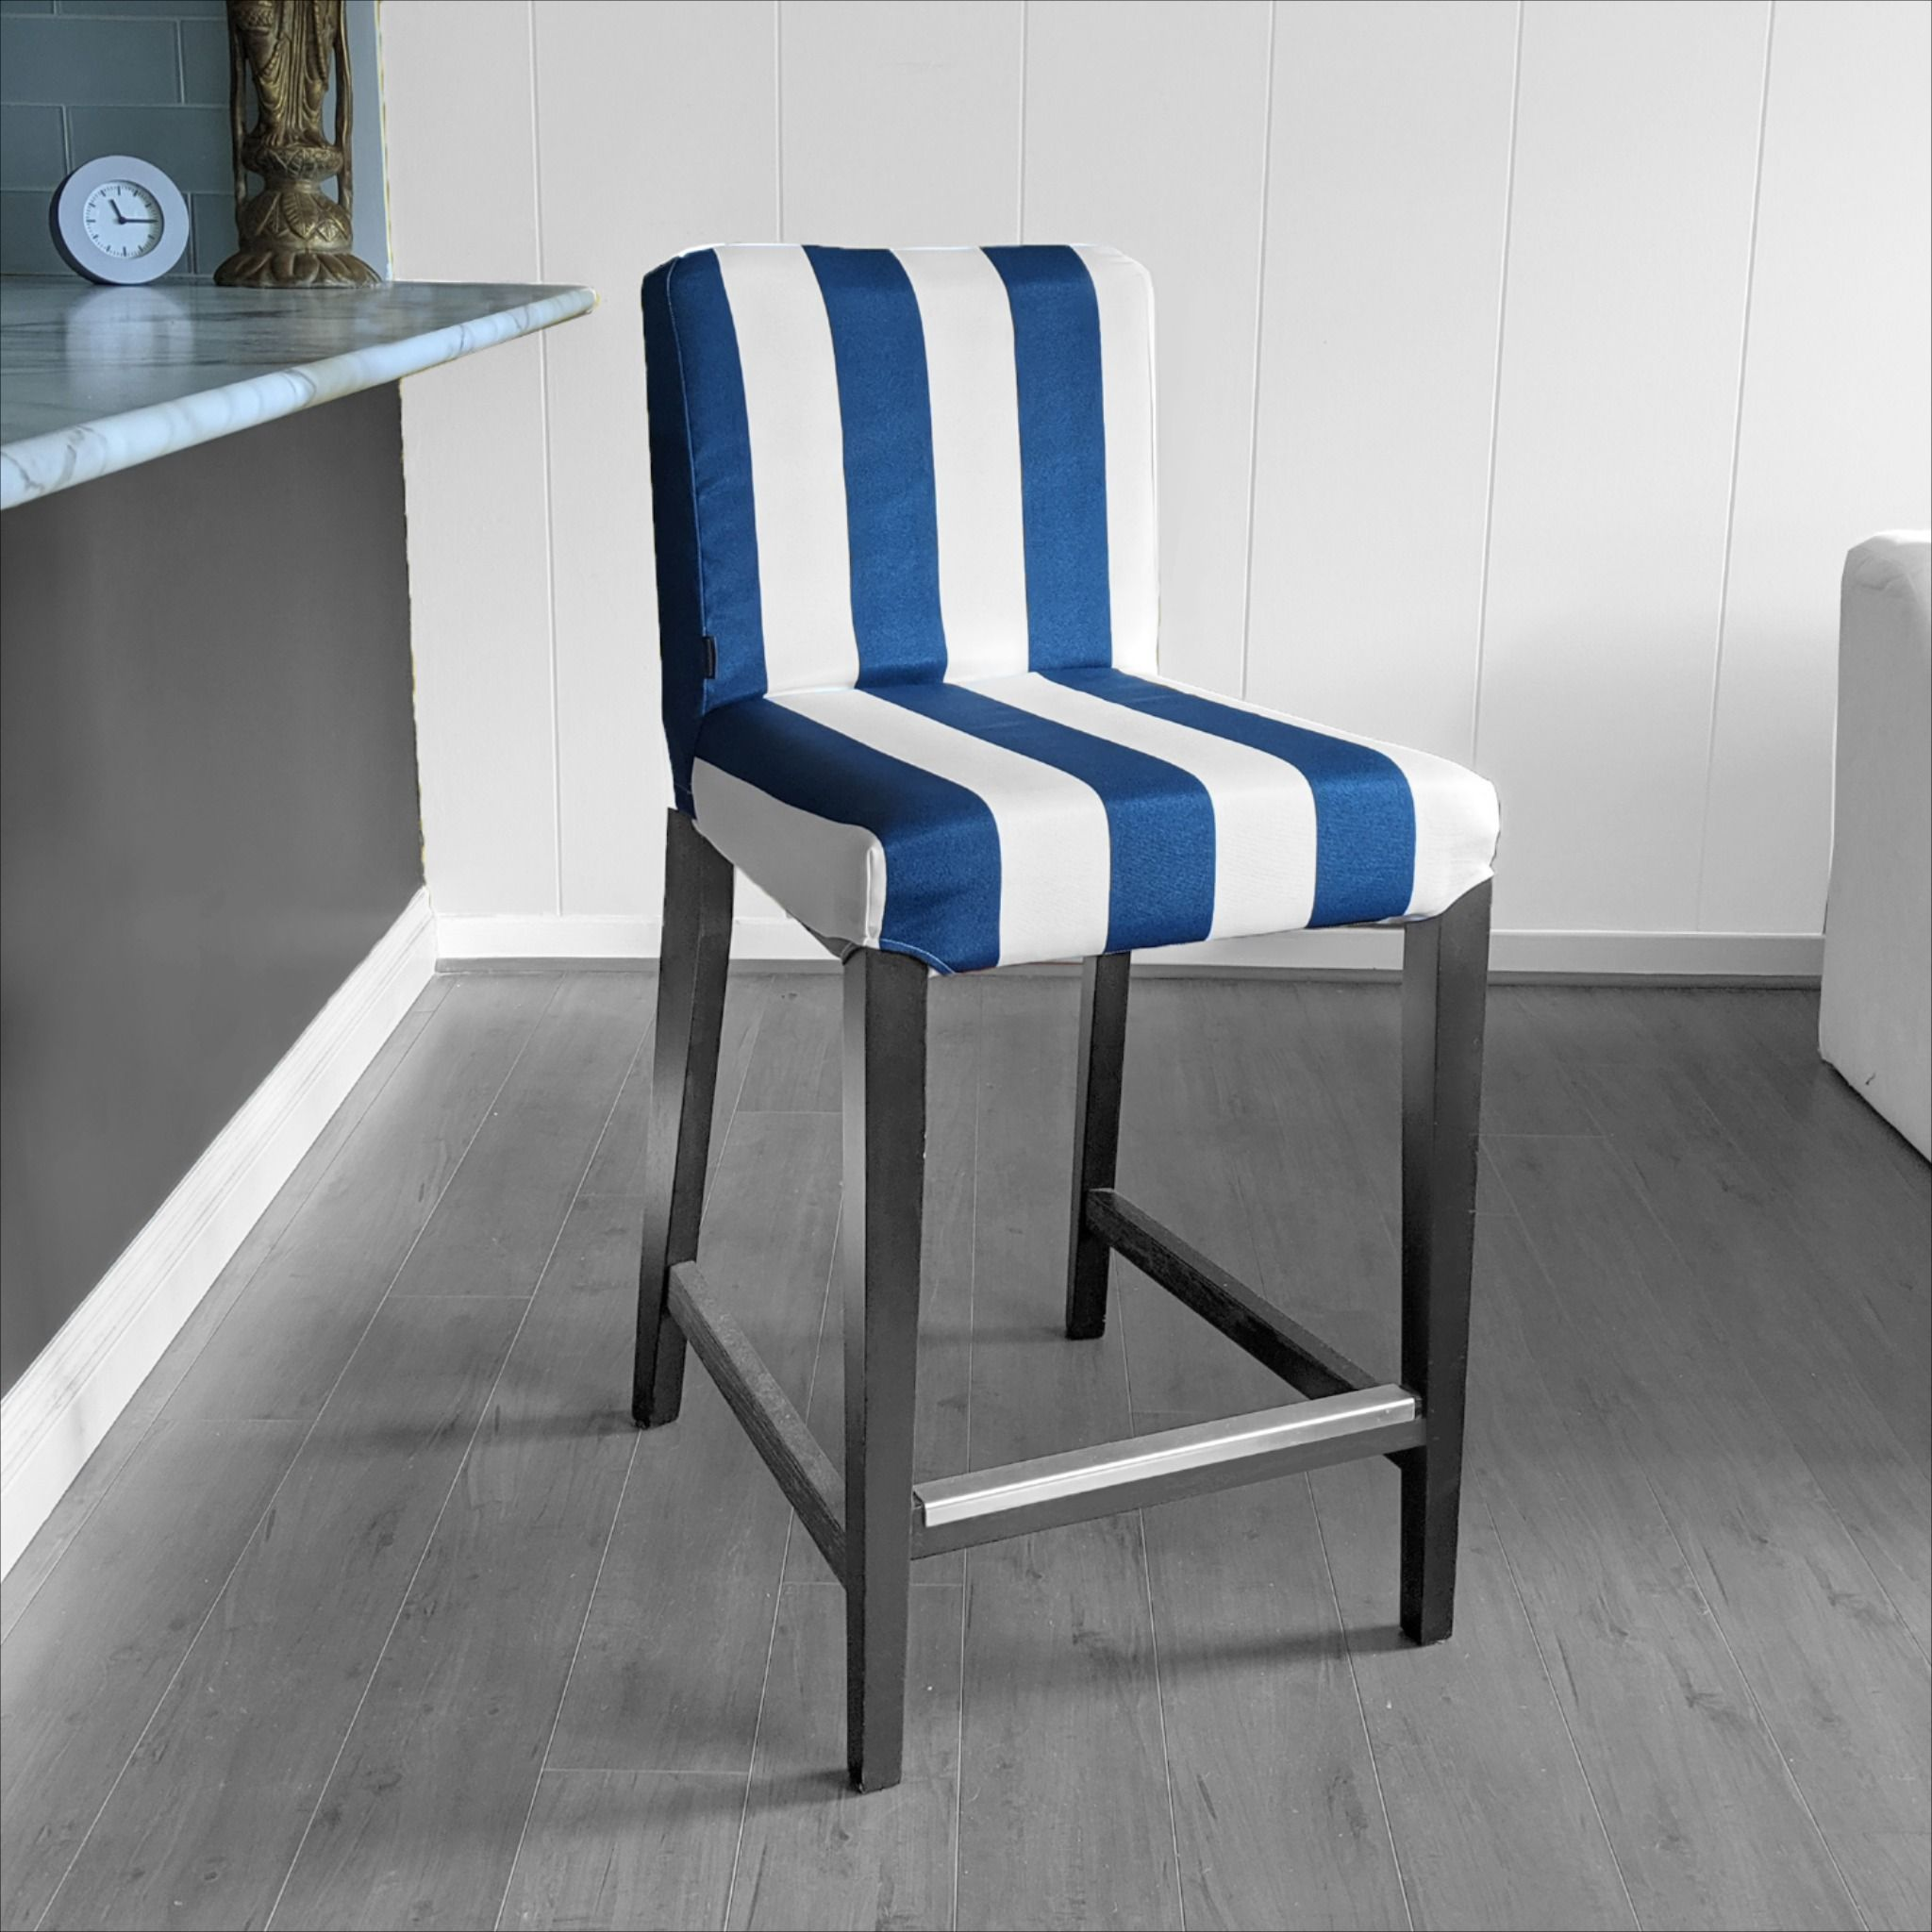 Fanback Chair With Navy Stripe: IKEA HENRIKSDAL Bar Stool Chair Cover, Navy Blue Cabana